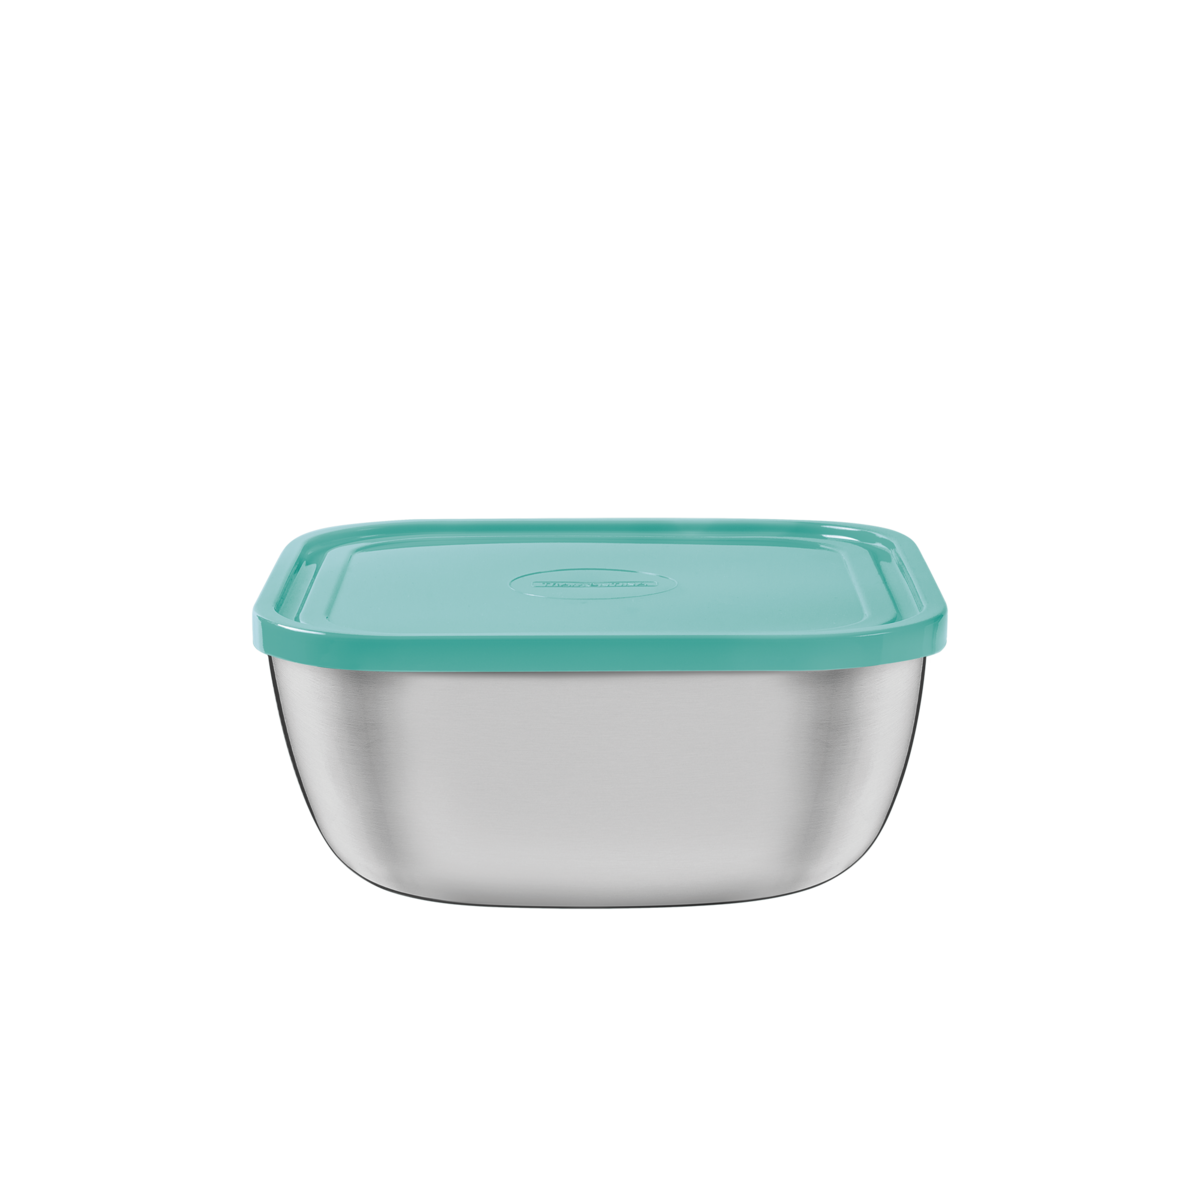 Tramontina - Stainless steel square container with green plastic lid ...